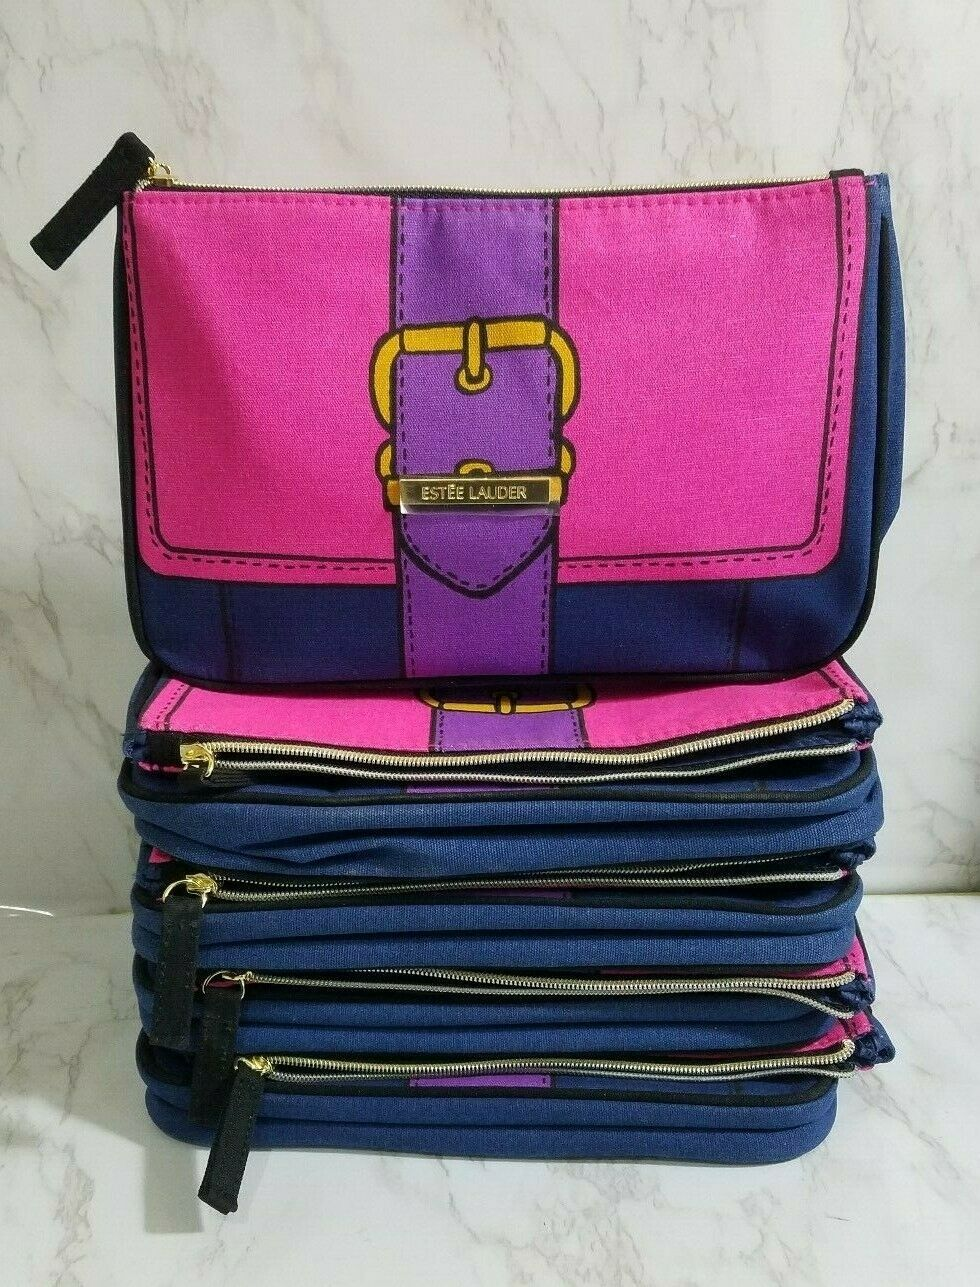 30 X ESTEE LAUDER PINK BUCKLE DESIGN MAKEUP COSMETIC TRAVEL POUCH BAG ...